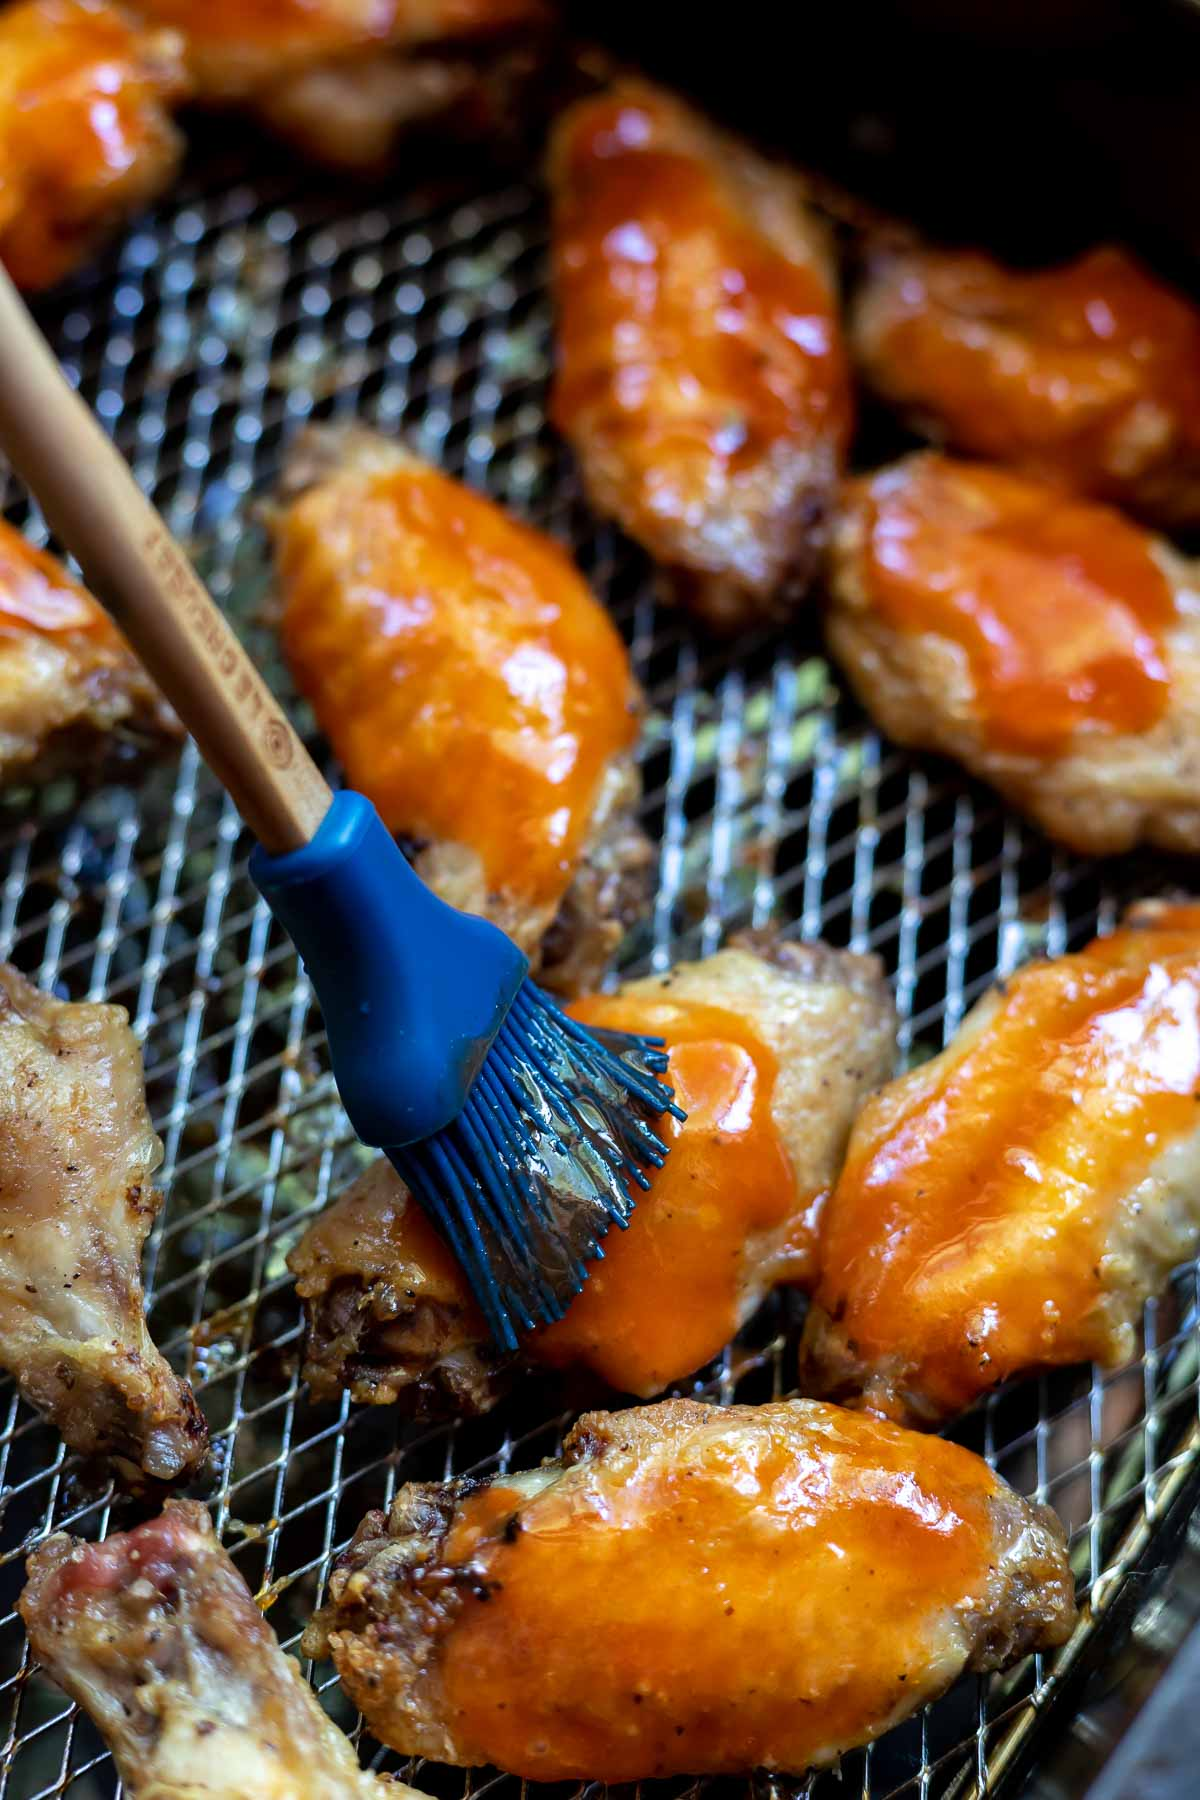 chicken wings being brushed with buffalo sauce in air fryer basket